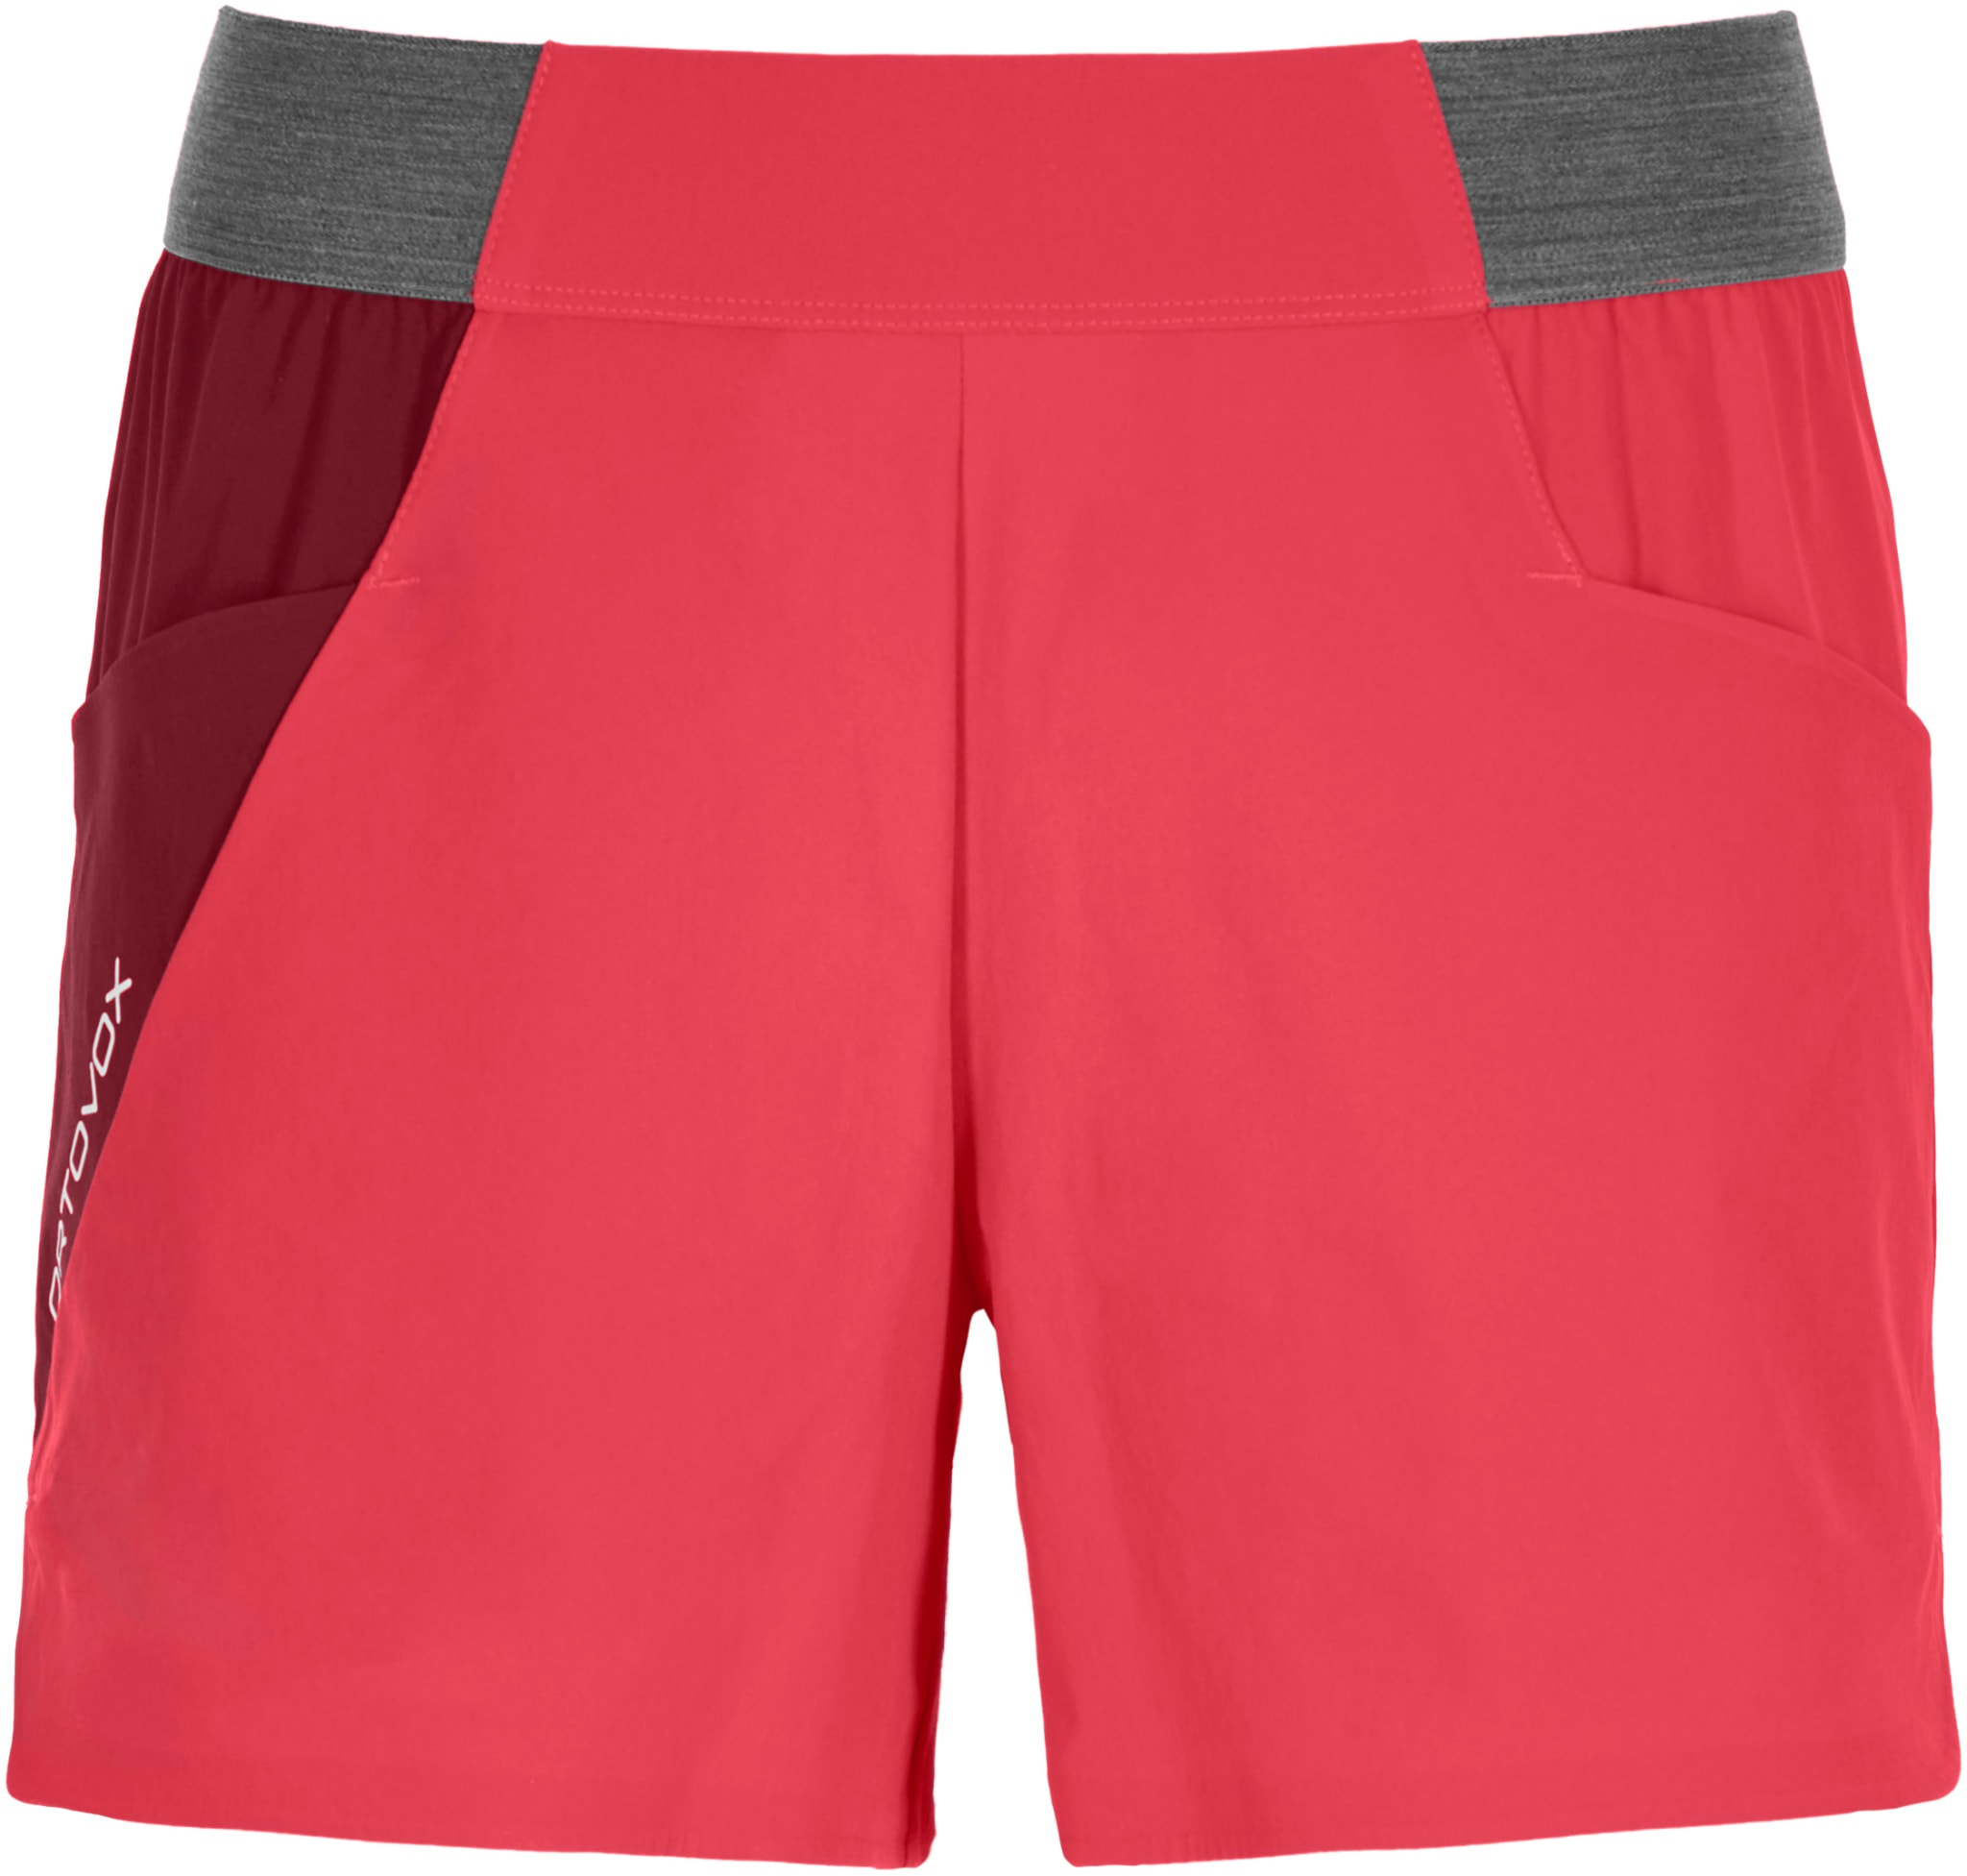 Superlett, lekker shorts i stretchmateriale